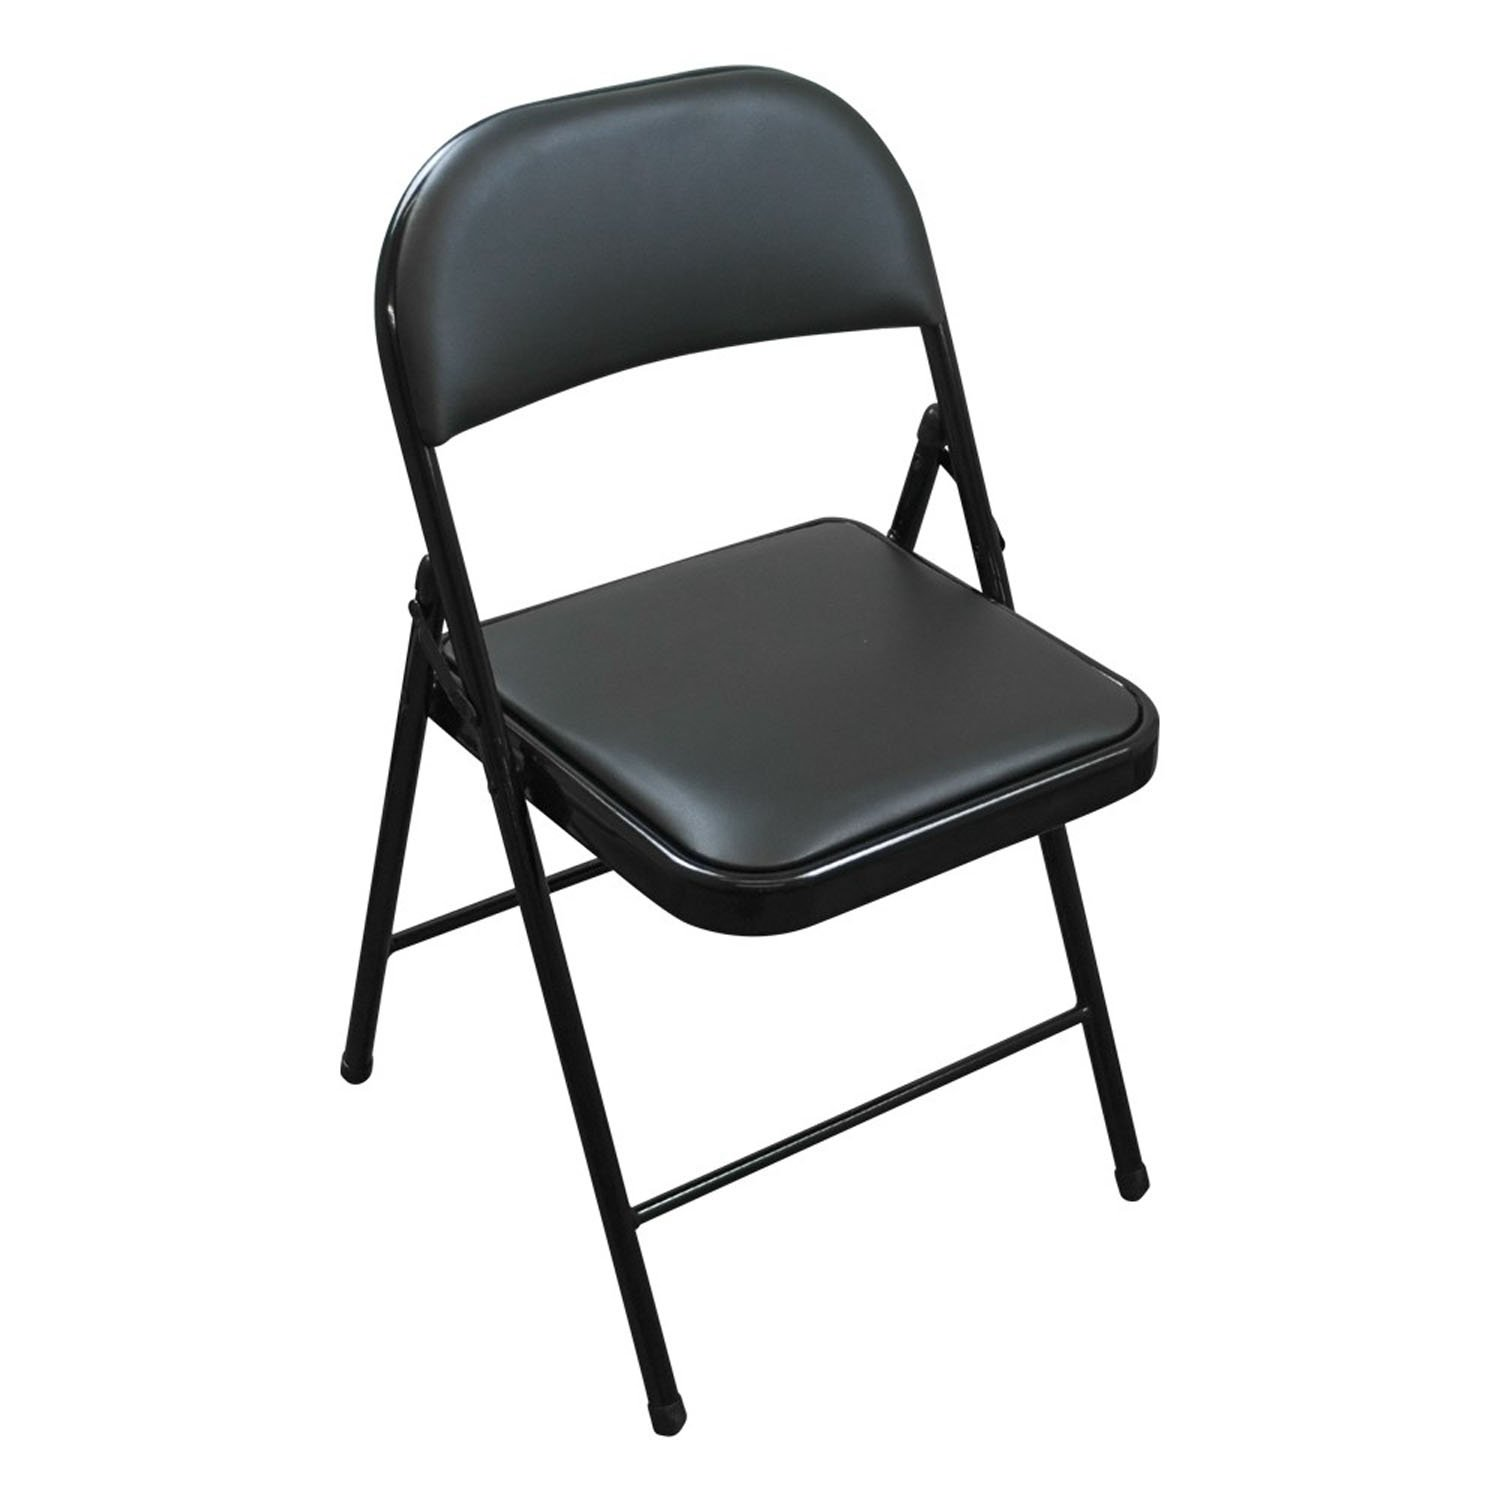 Folding Faux Leather Chair - Padded for Comfort - Strong Steel - Great for Guests TekBox